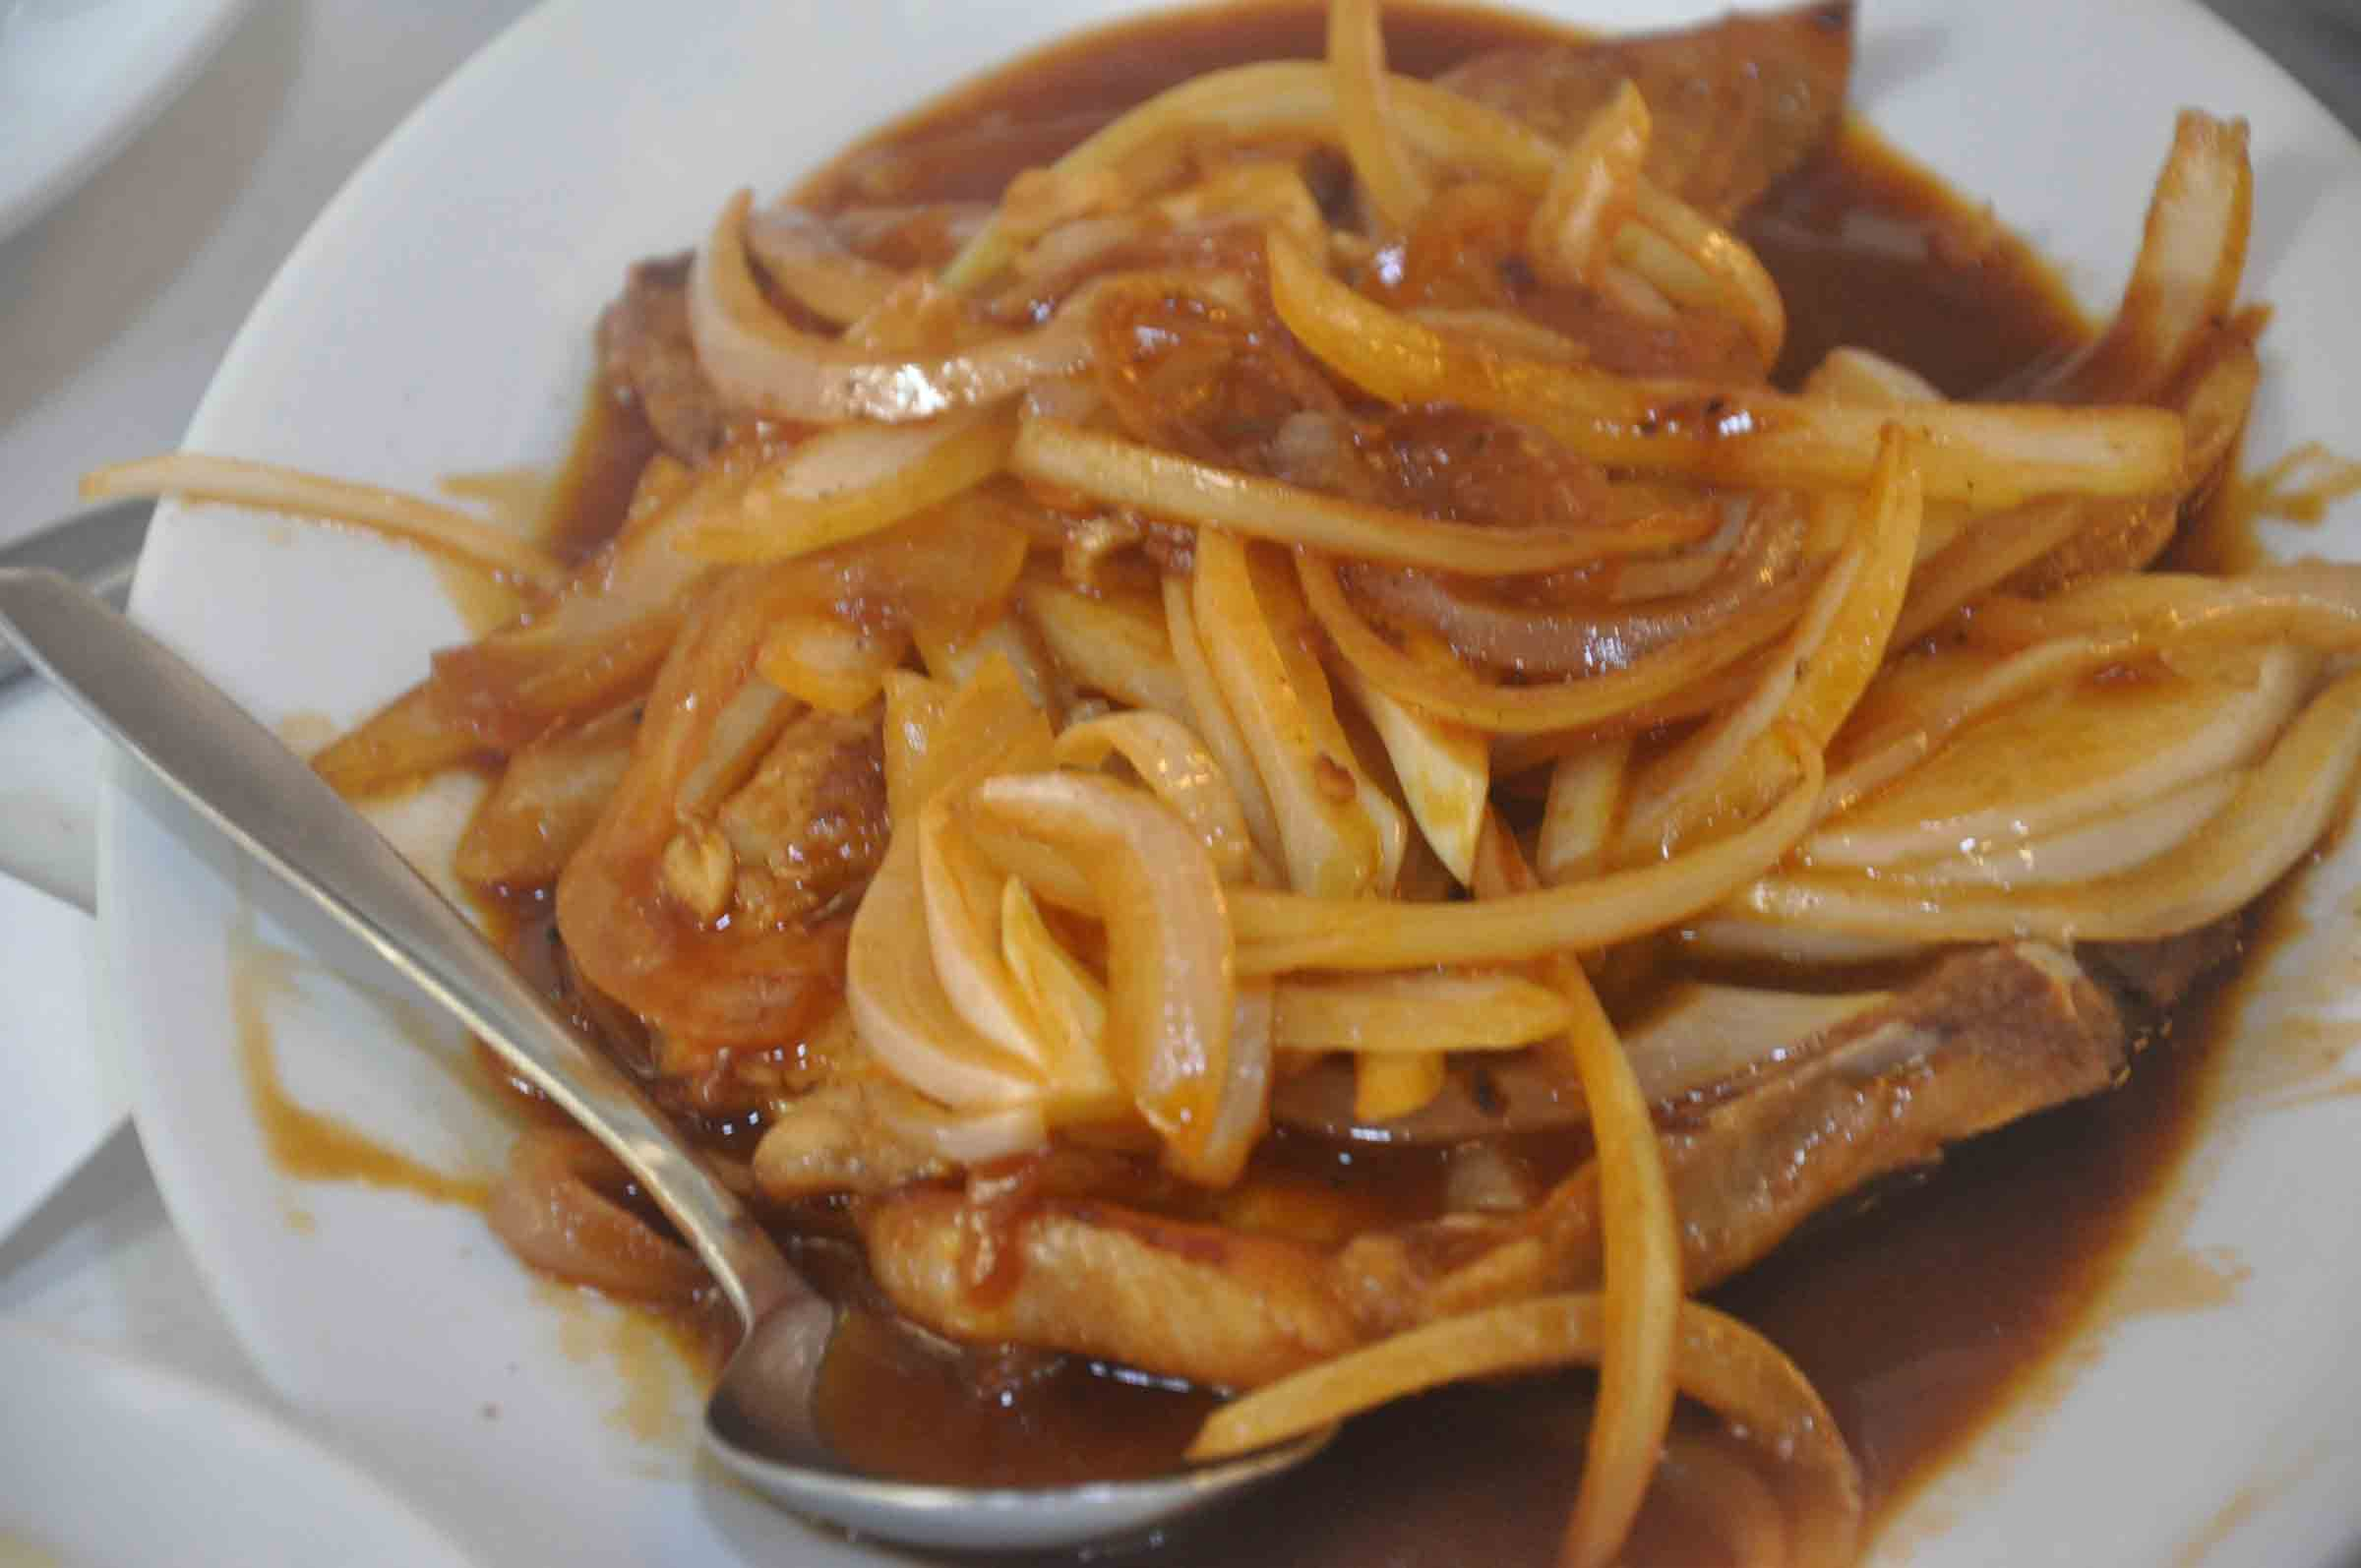 Rickshaw Macau pork chop with onions